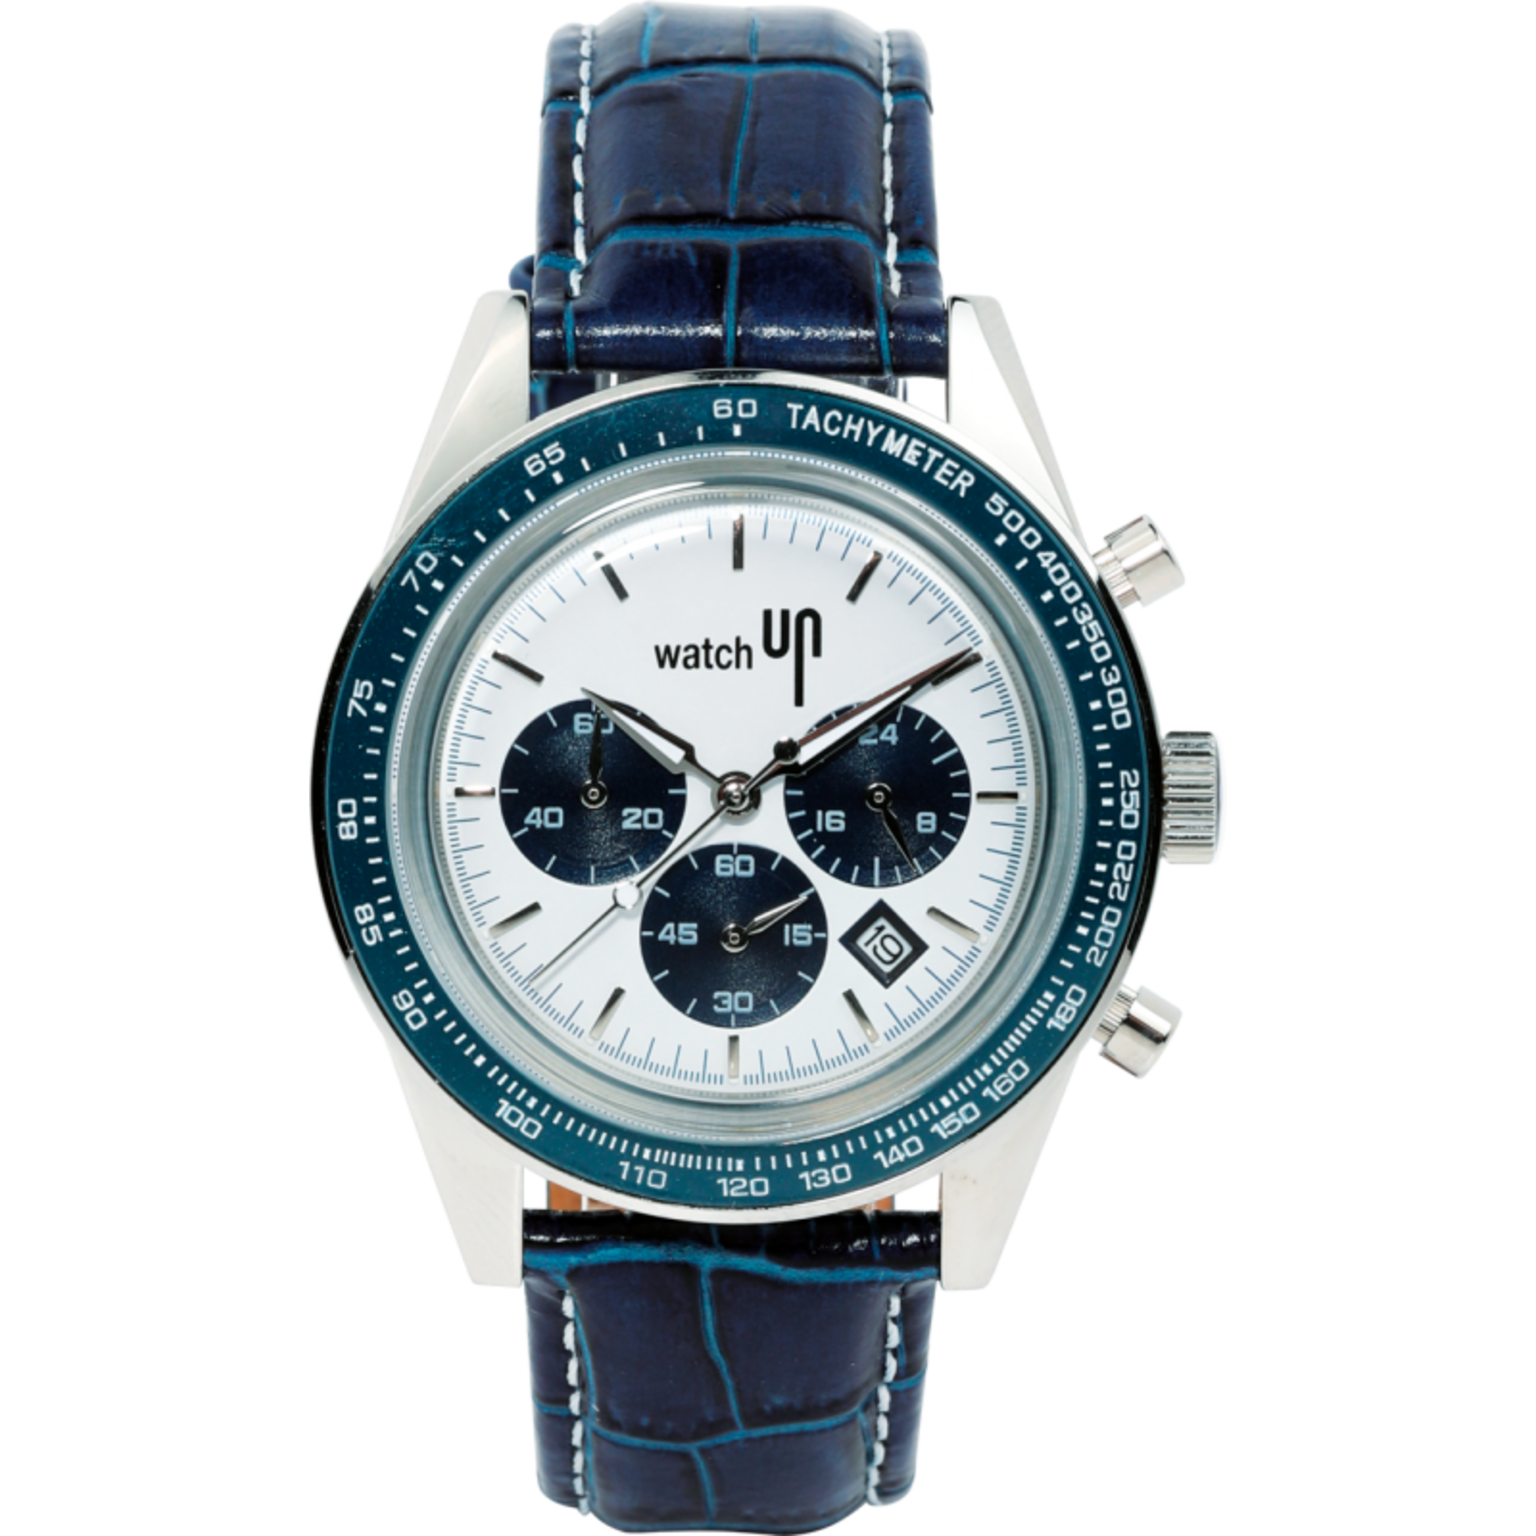 WatchUp Chronograph watch